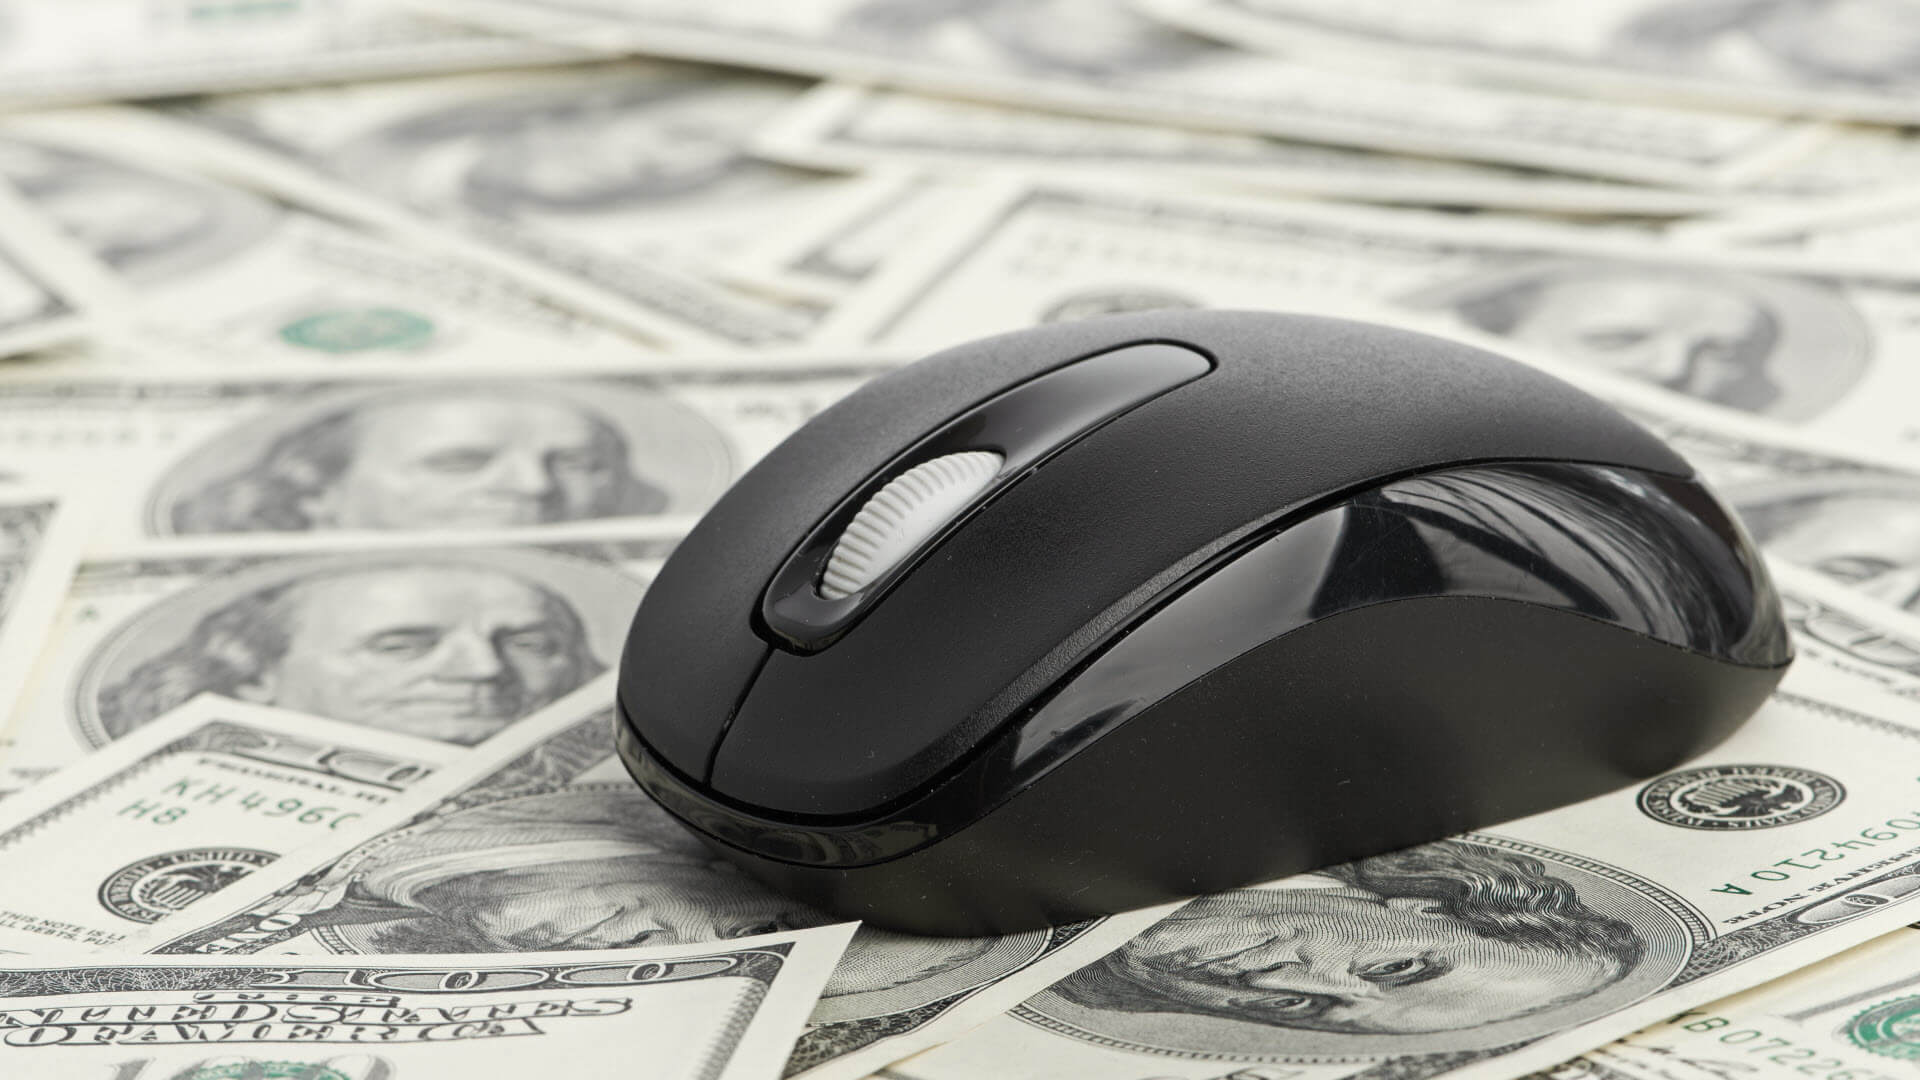 money-mouse_131046845-ss-1920